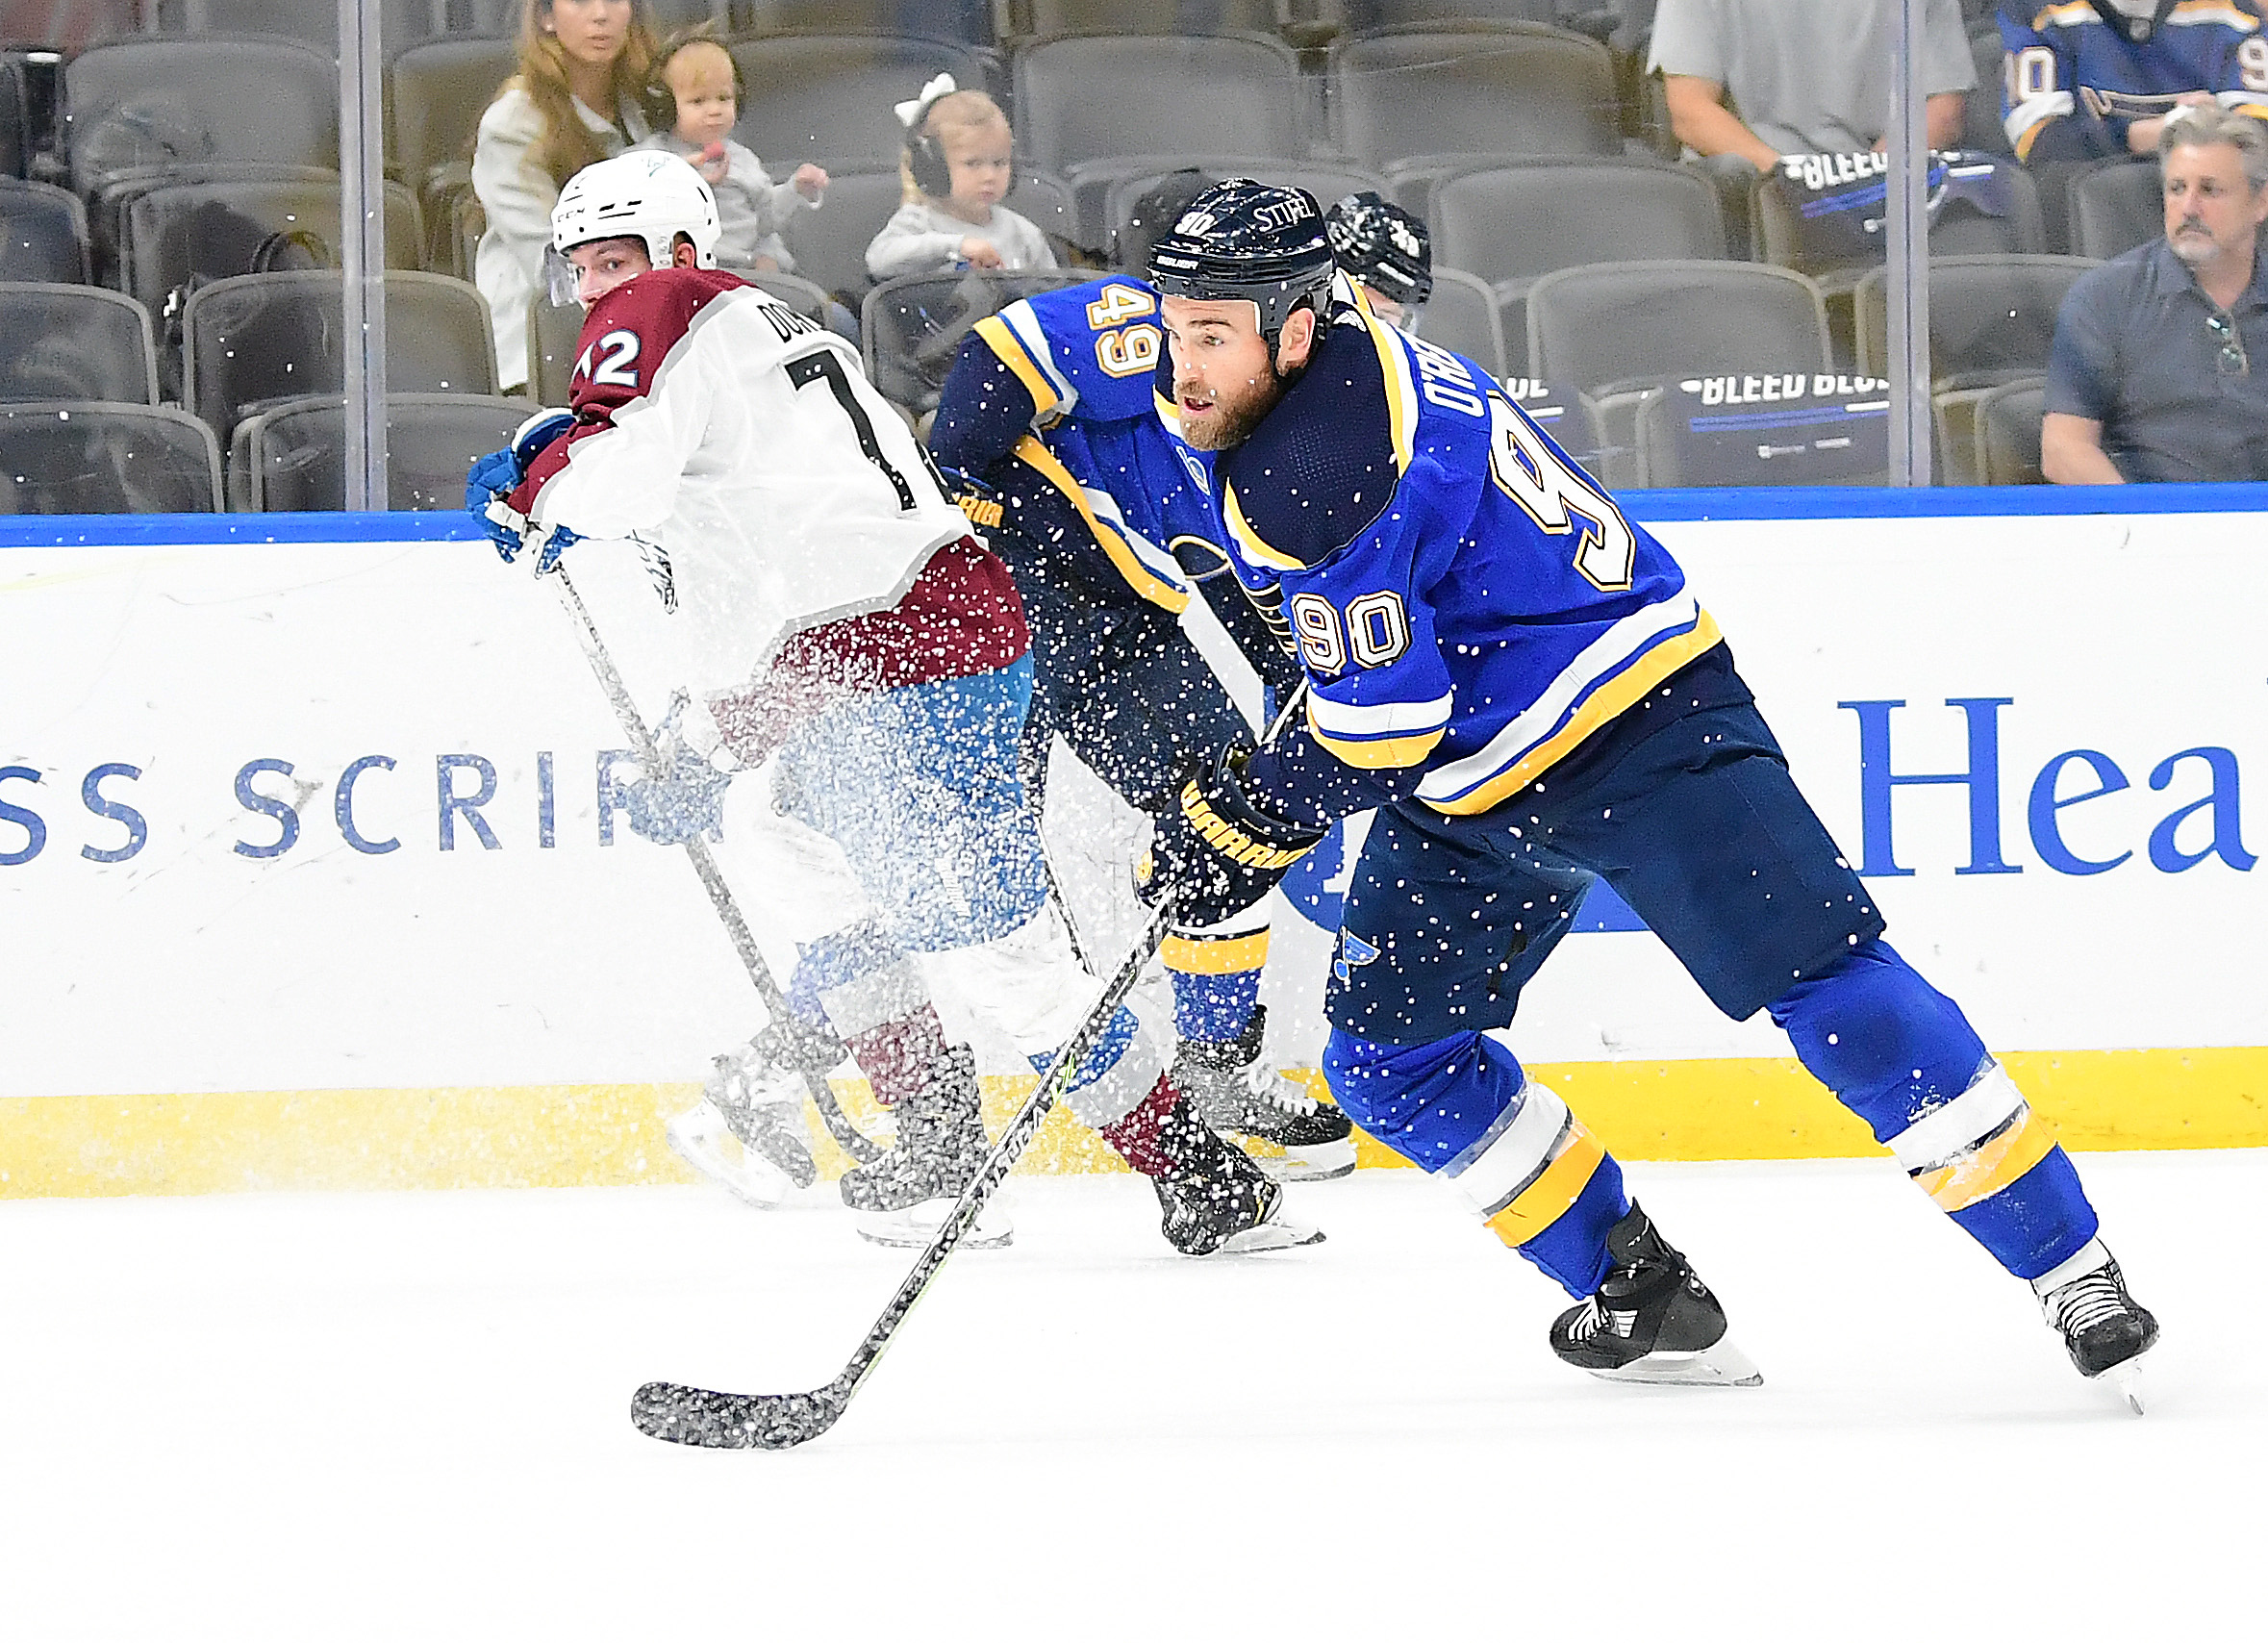 NHL: MAY 23 Stanley Cup Playoffs First Round - Avalanche at Blues